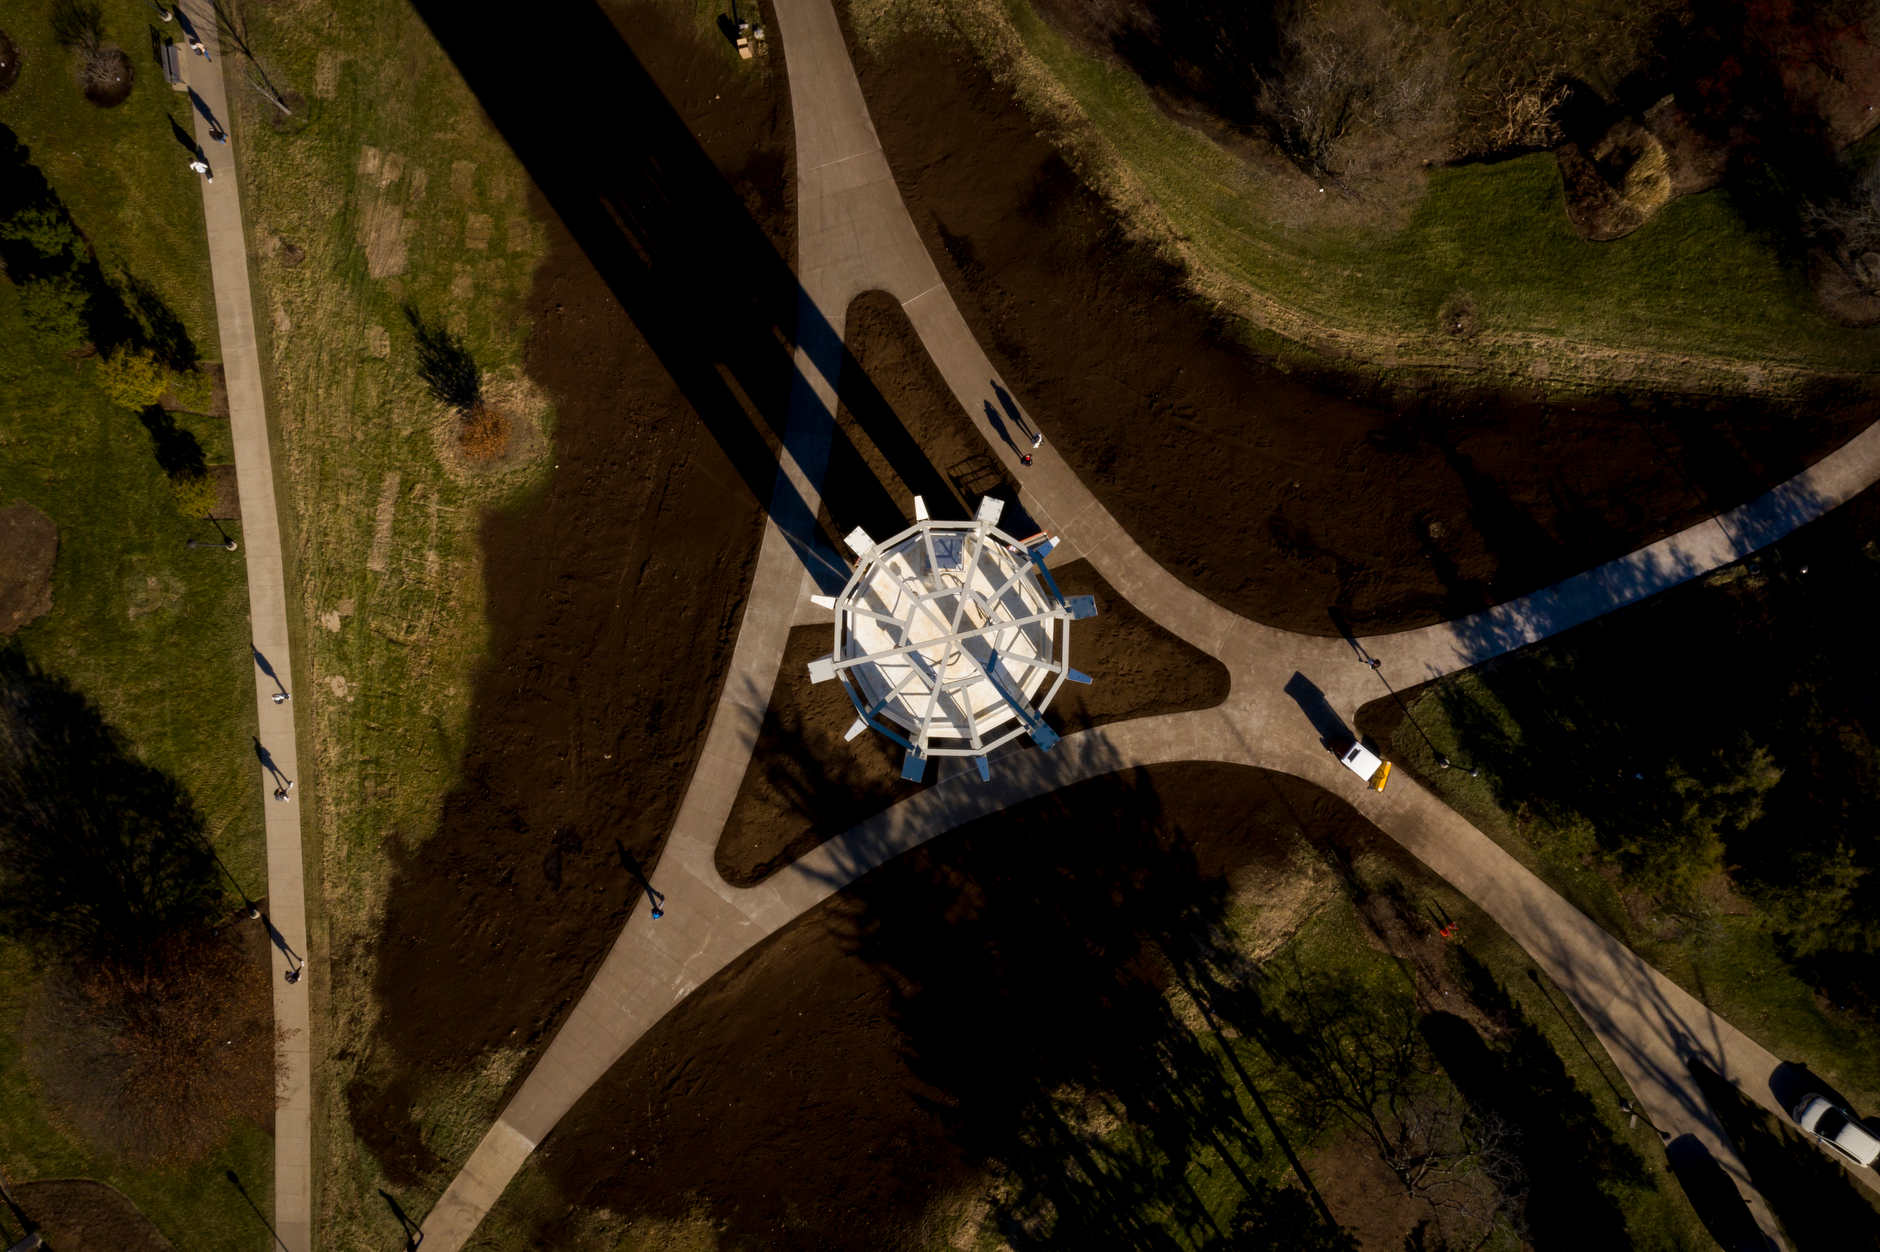 The Metz Bicentennial Grand Carillon stands in the Cox Arboretum at IU Bloomington on Thursday, Jan. 16, 2020. (James Brosher/Indiana University)